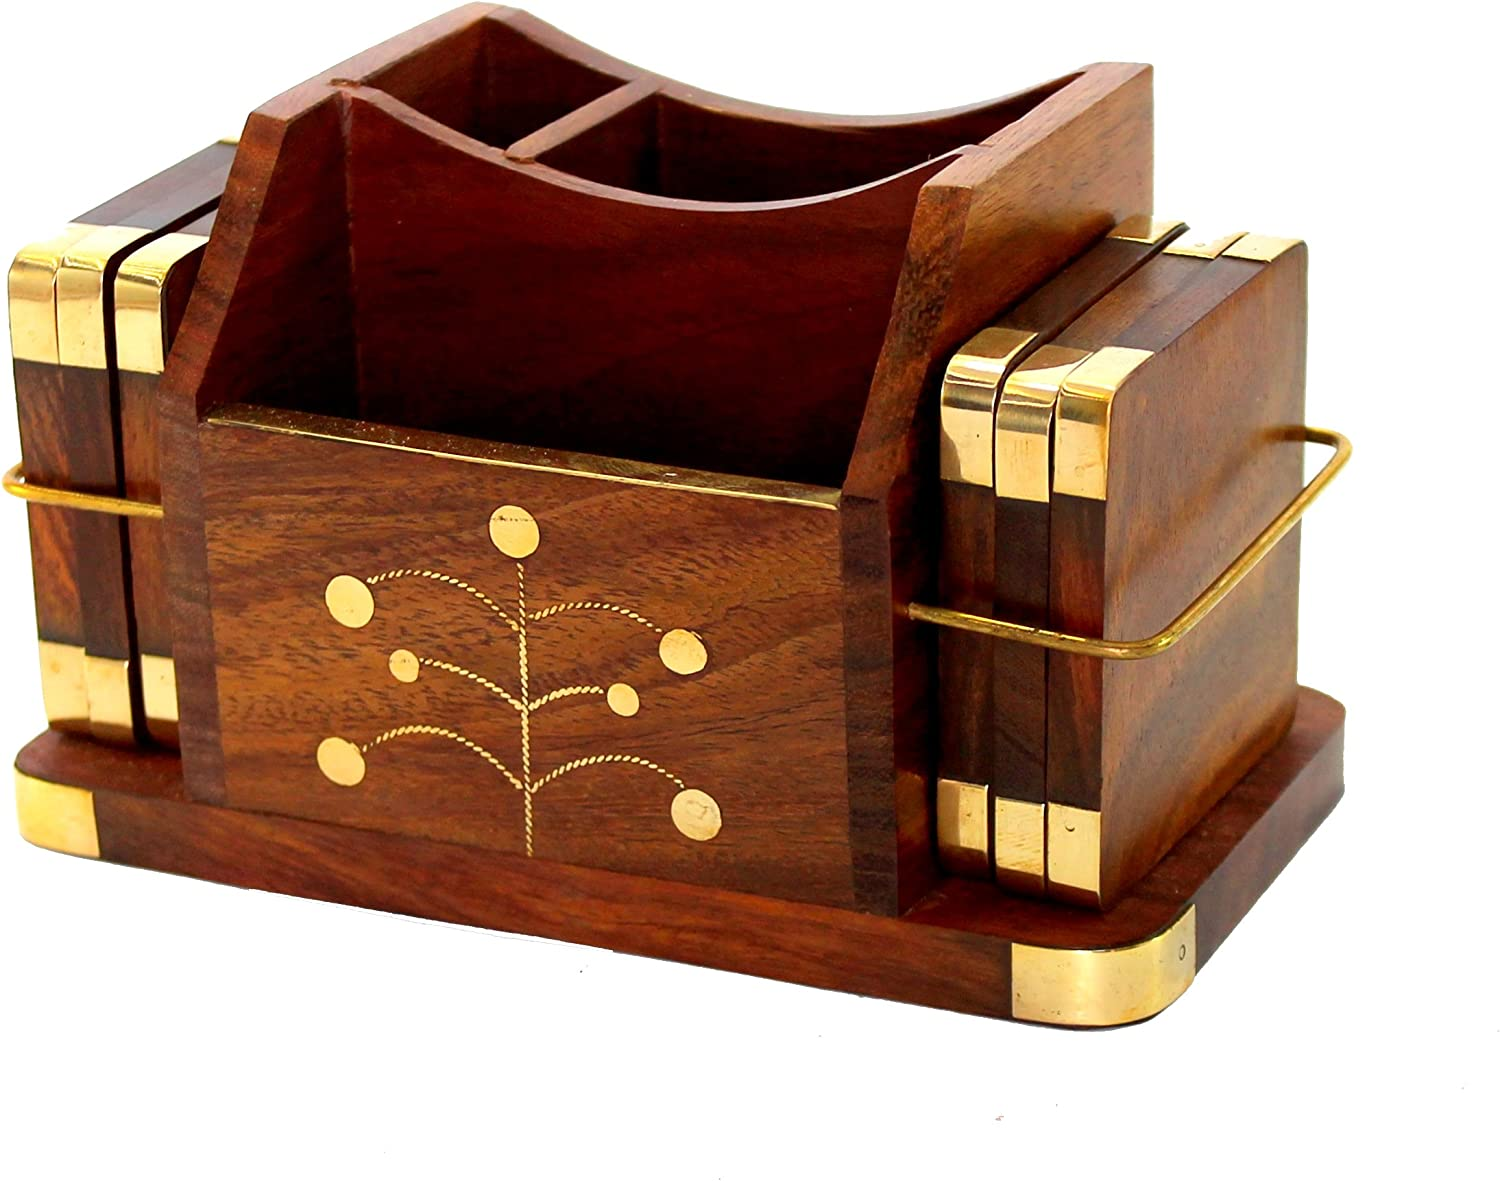 Stonkraft Wooden Rosewood Desk Organiser, Coaster/Coasters Set, Pen Stand, Business Card Holder with Brass Work (Office Table Accessories)